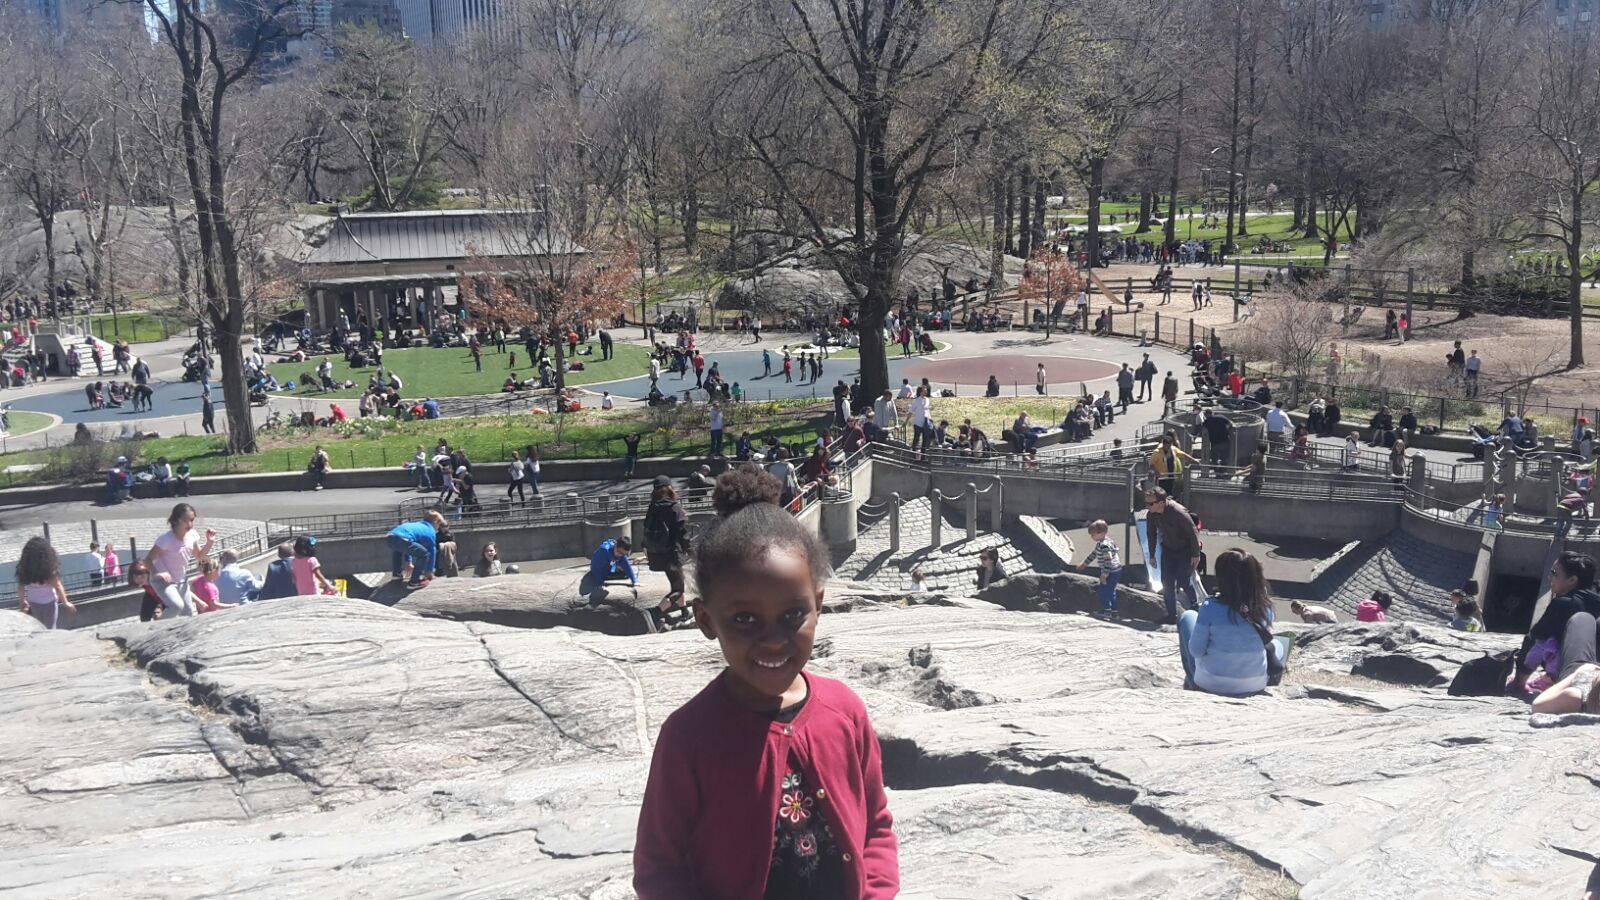 She conquered Mt. Central Park, the world is her oyster! (Photo credit - uncle Busoye!)